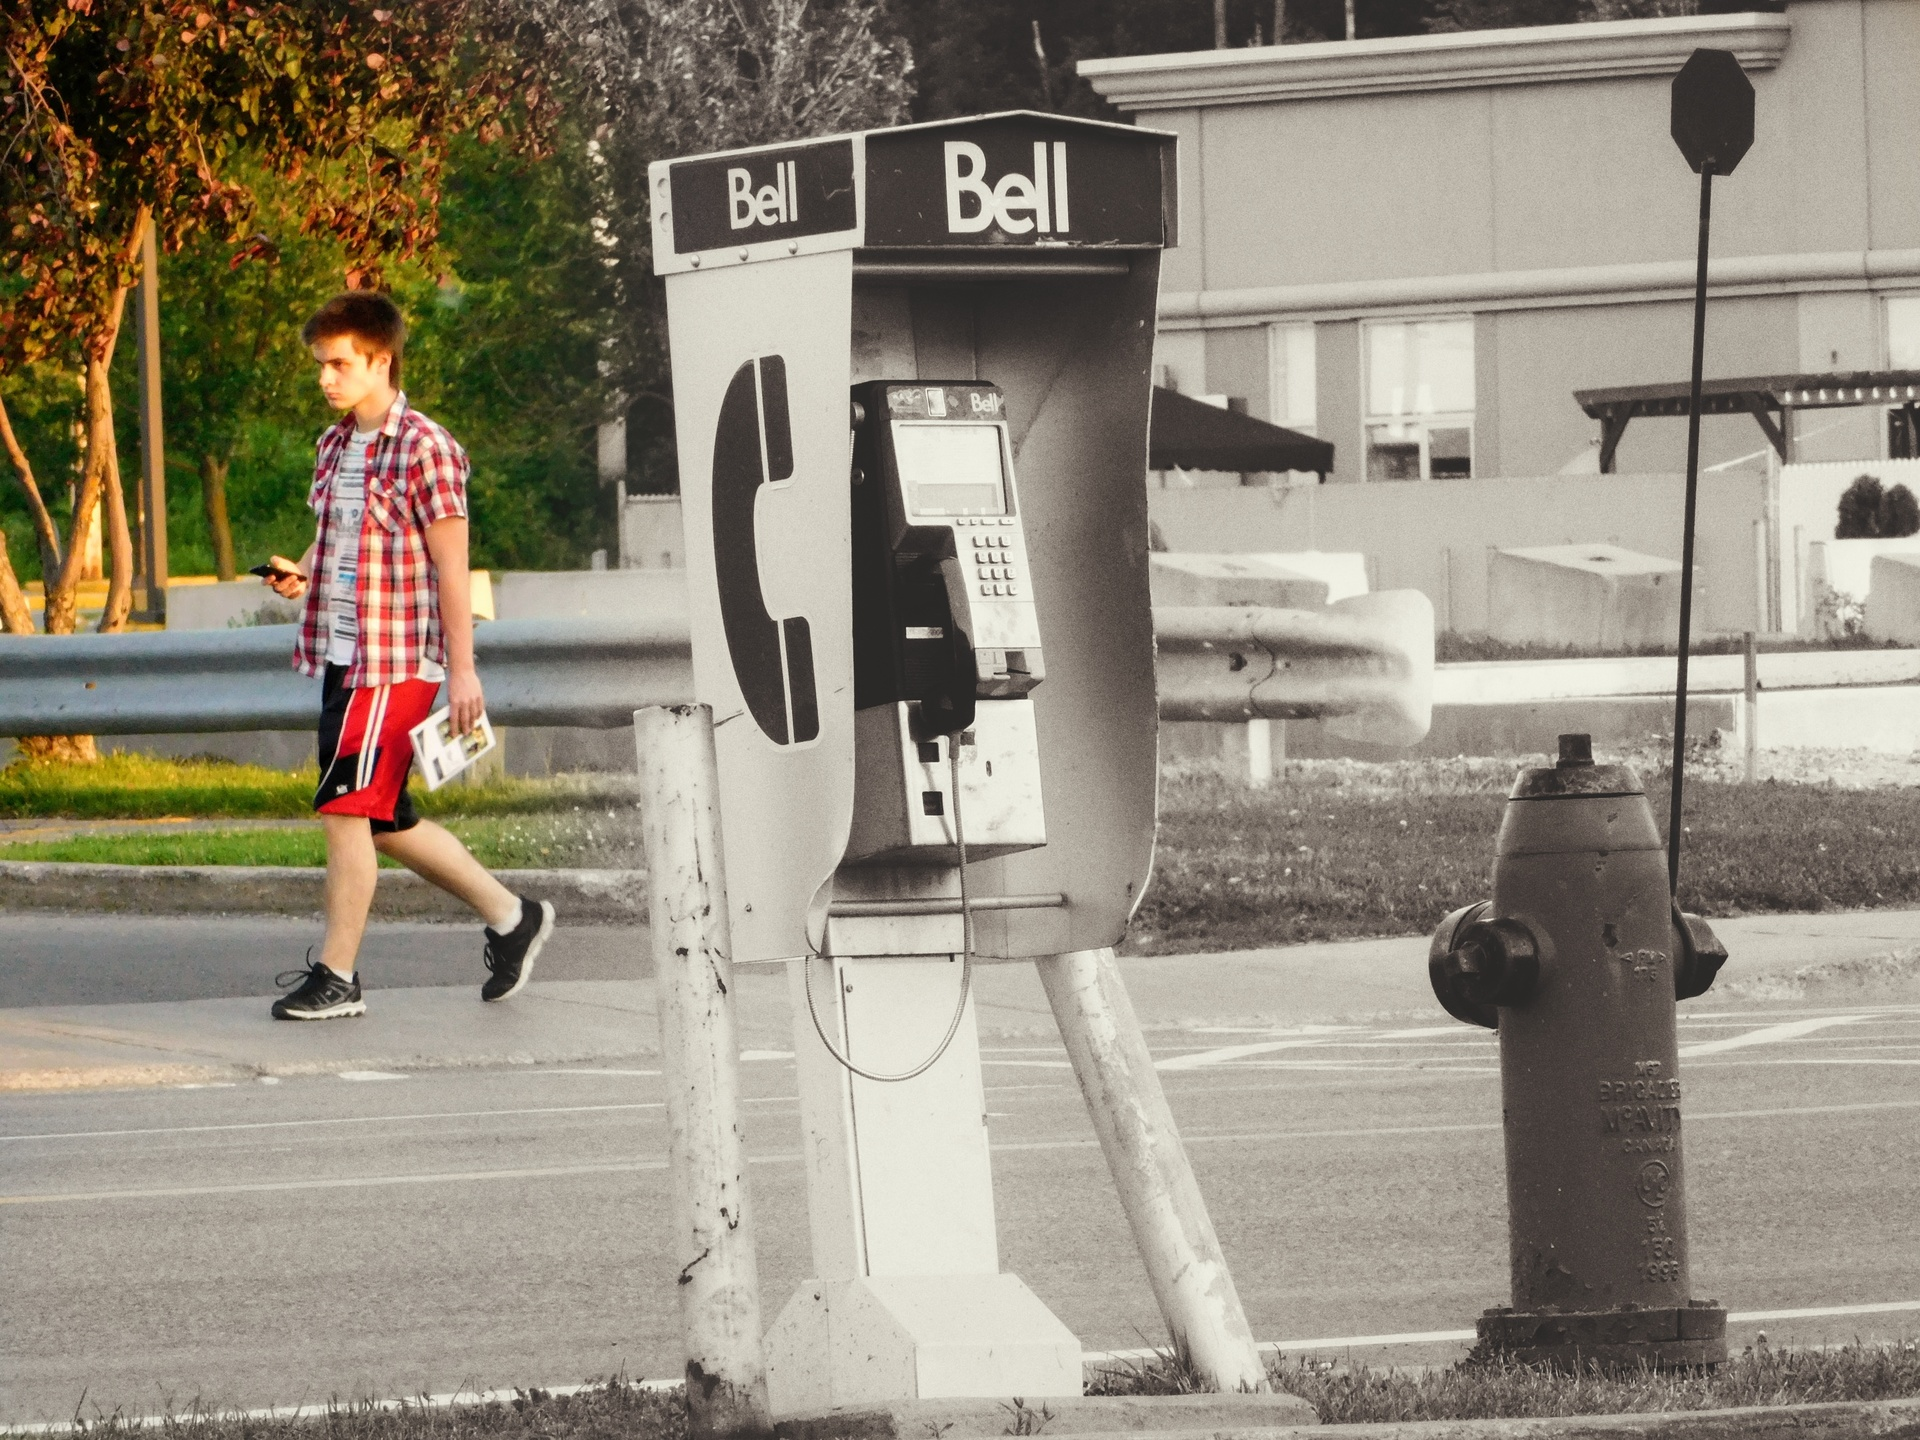 Cellphone versus Phone booth | rick.cognyl.fournier, man, outdoors, people